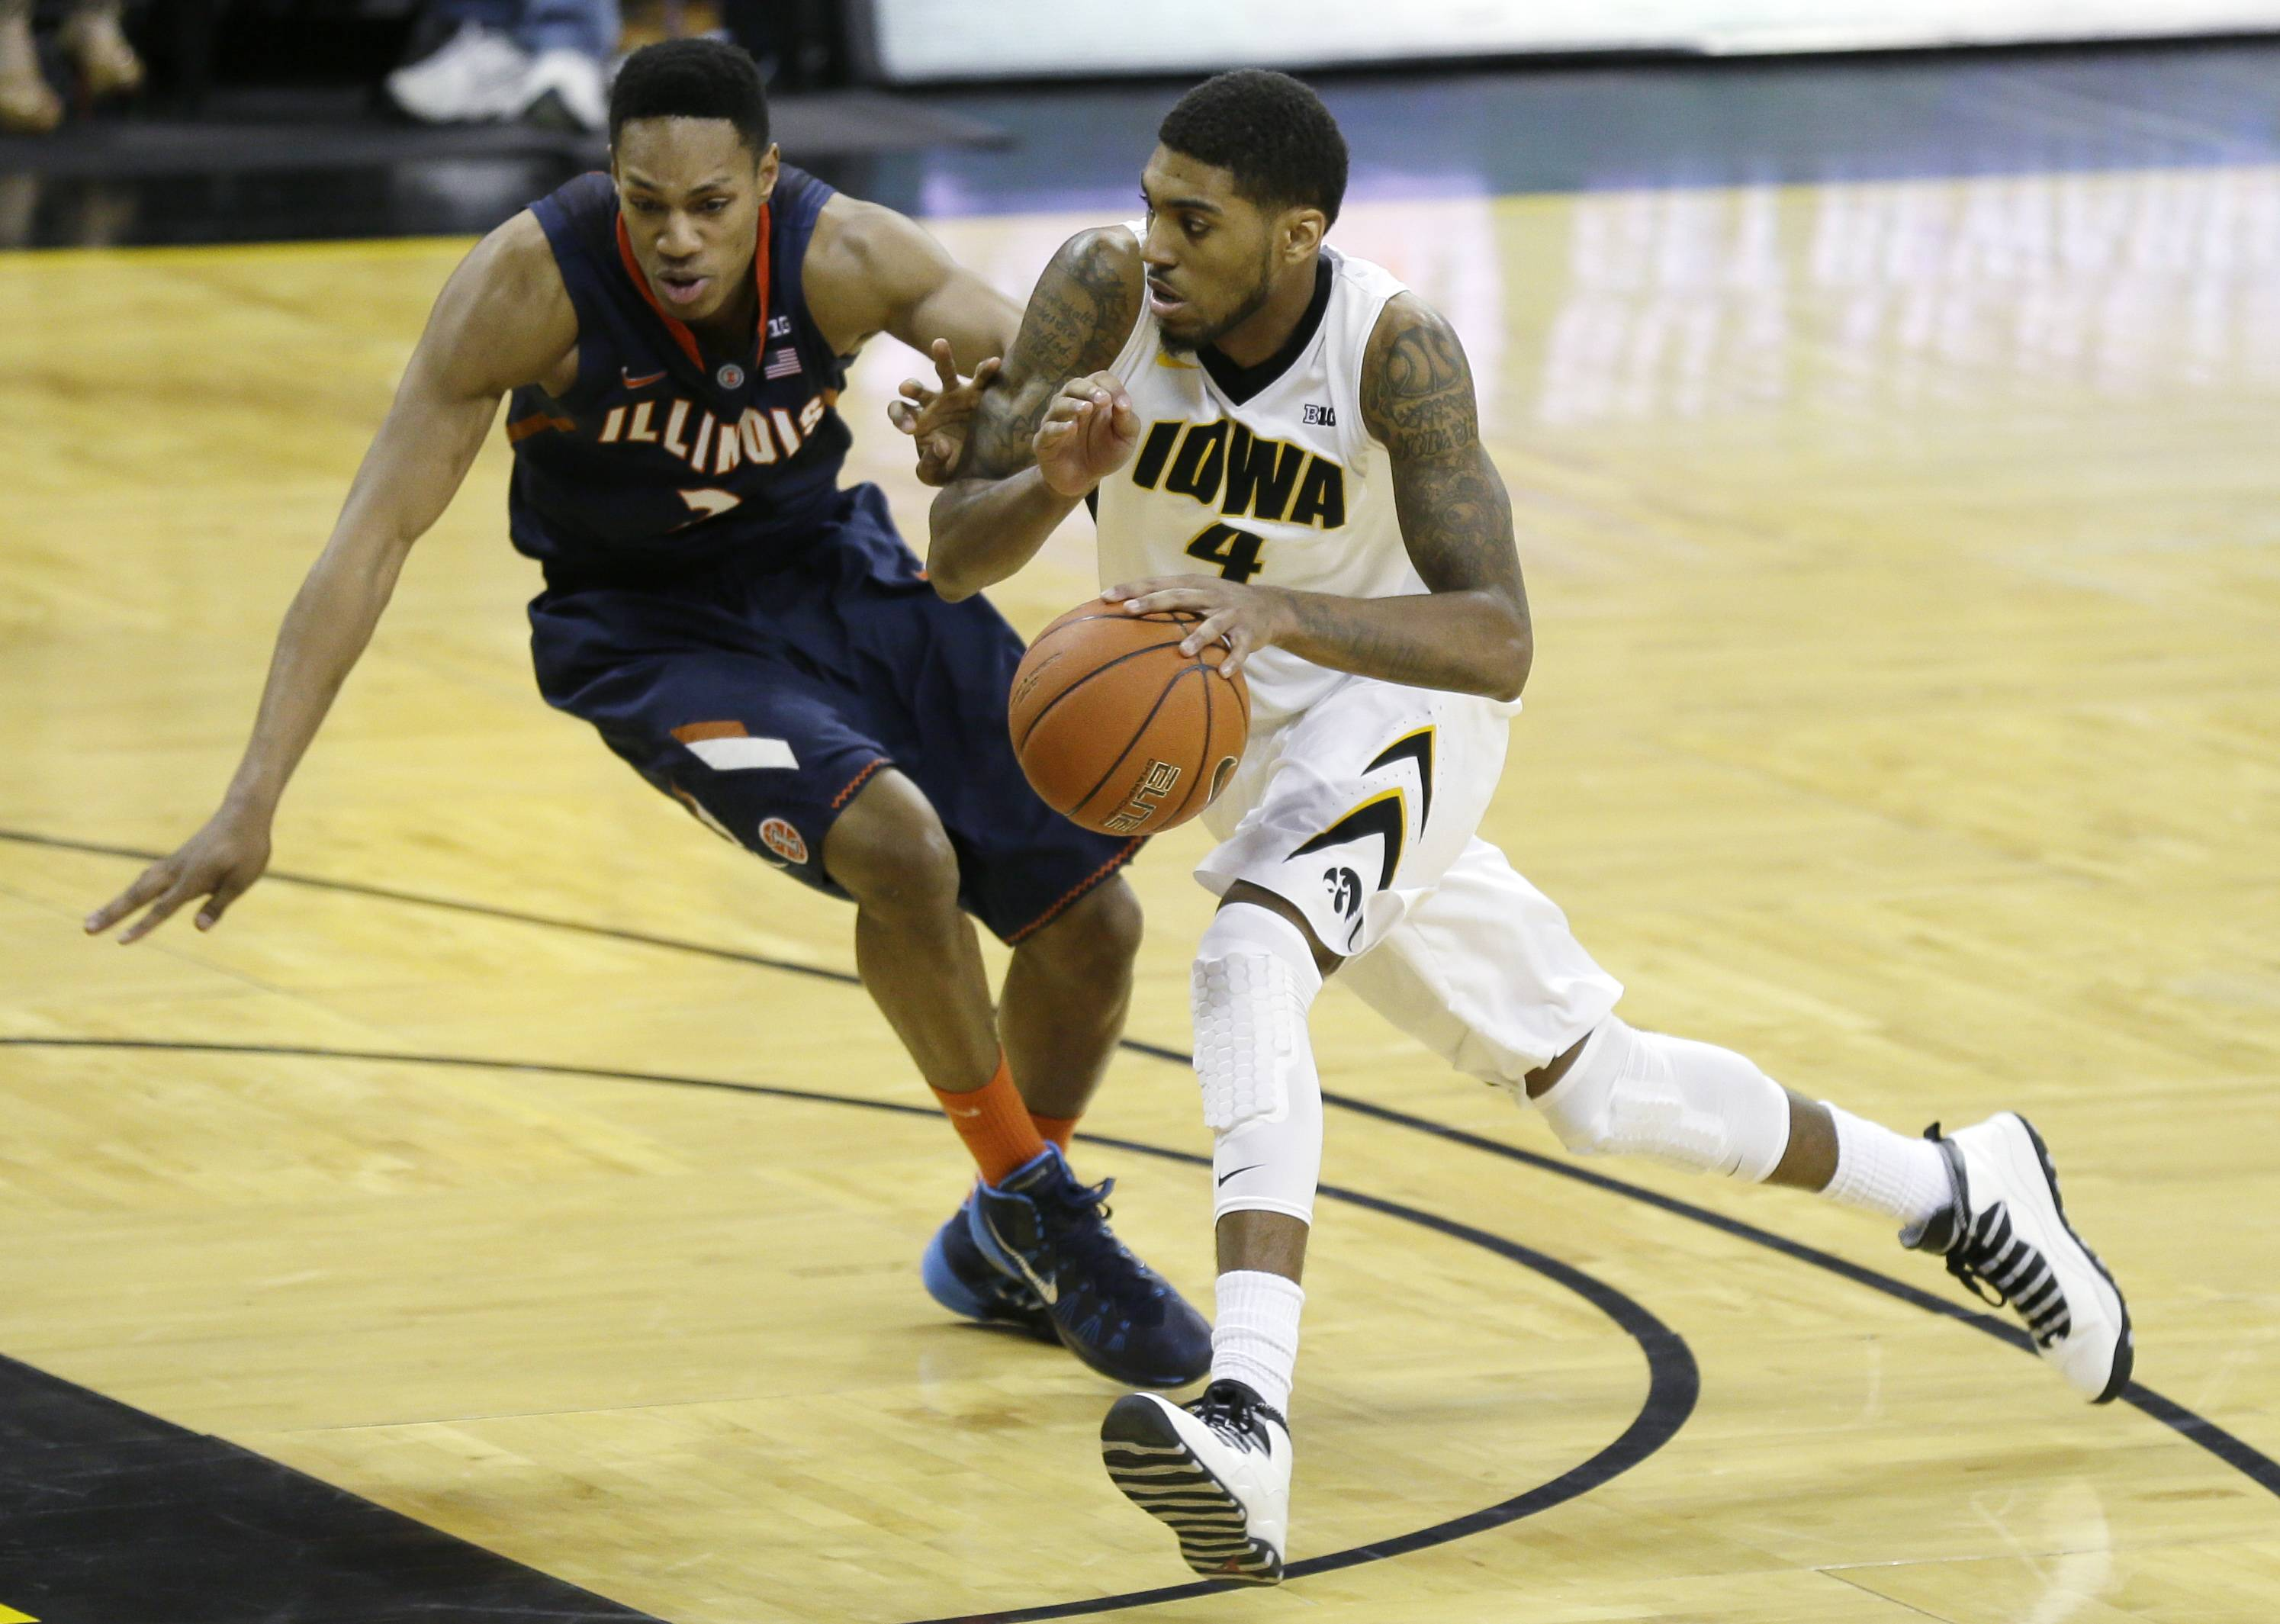 Iowa guard Devyn Marble, right, drives past Illinois guard Joseph Bertrand during the second half of an NCAA college basketball game on Saturday, March 8, 2014, in Iowa City, Iowa.